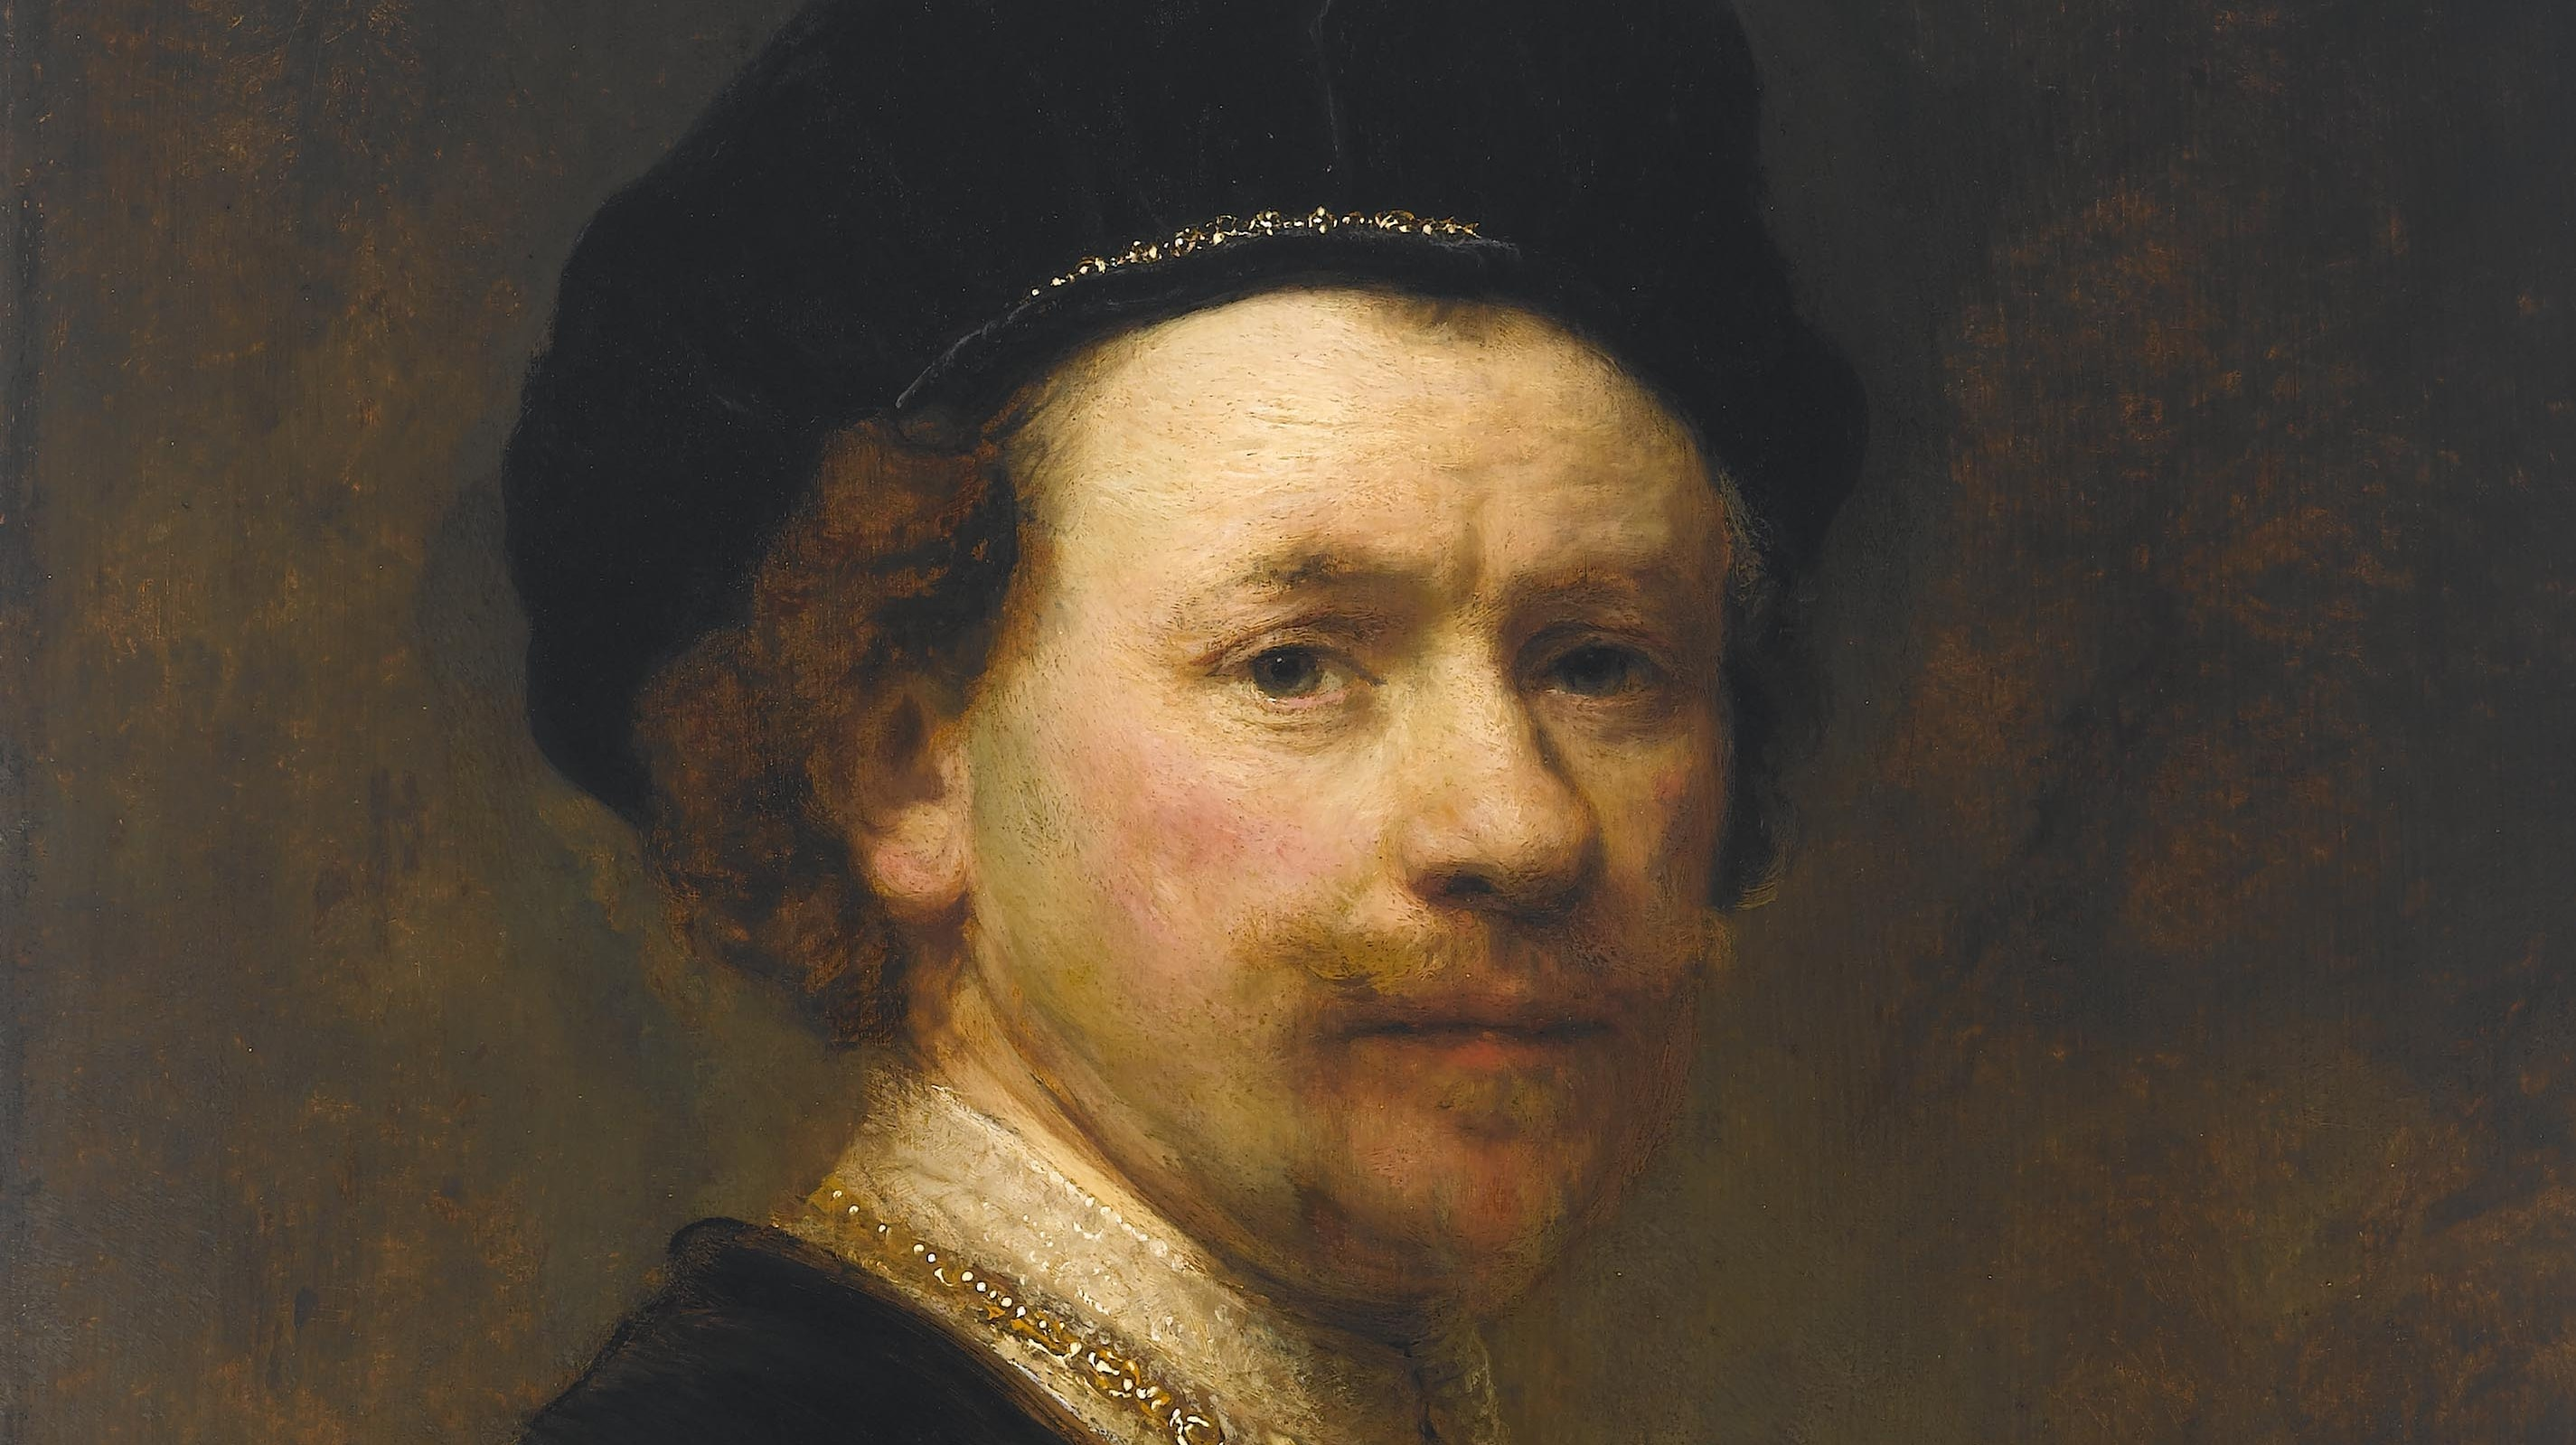 Rembrandt Harmenszoon van Rijn. Self-Portrait, about 1636–38. The Norton Simon Foundation, Pasadena, California.